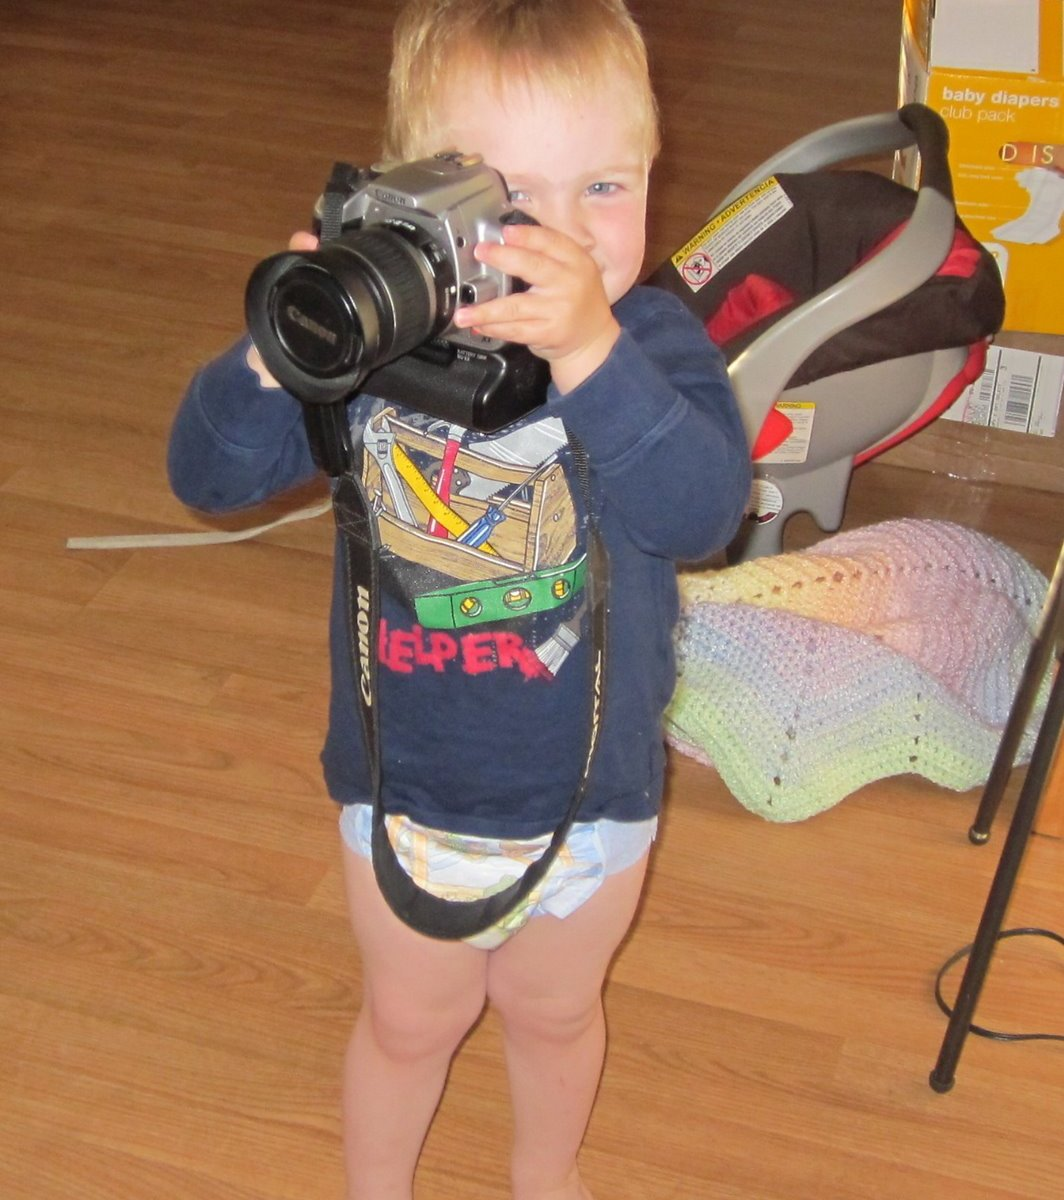 Spencer the photographer